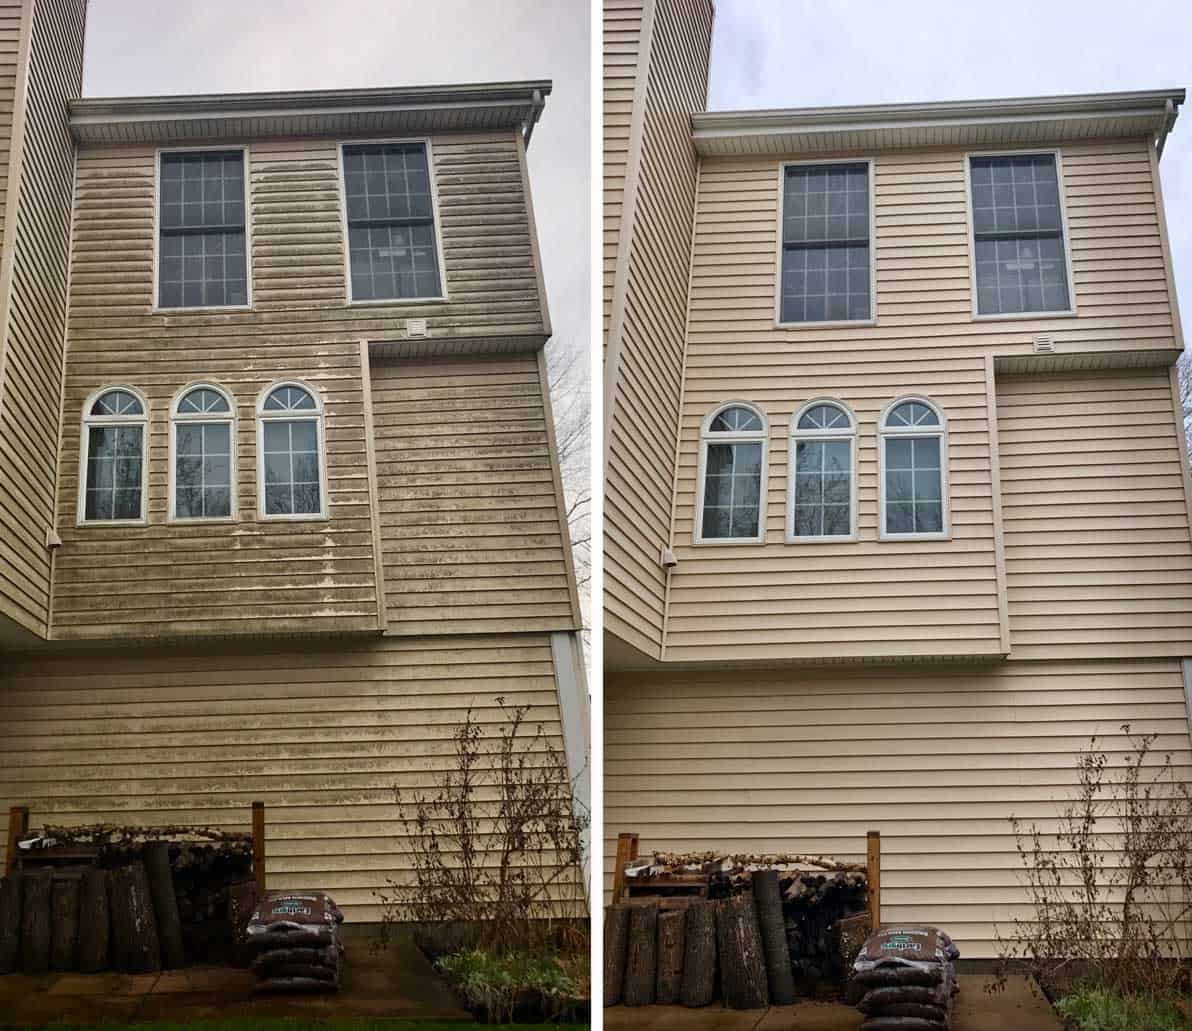 On the left, a dirty house before Even Flow and on the right, the same house is sparkling clean